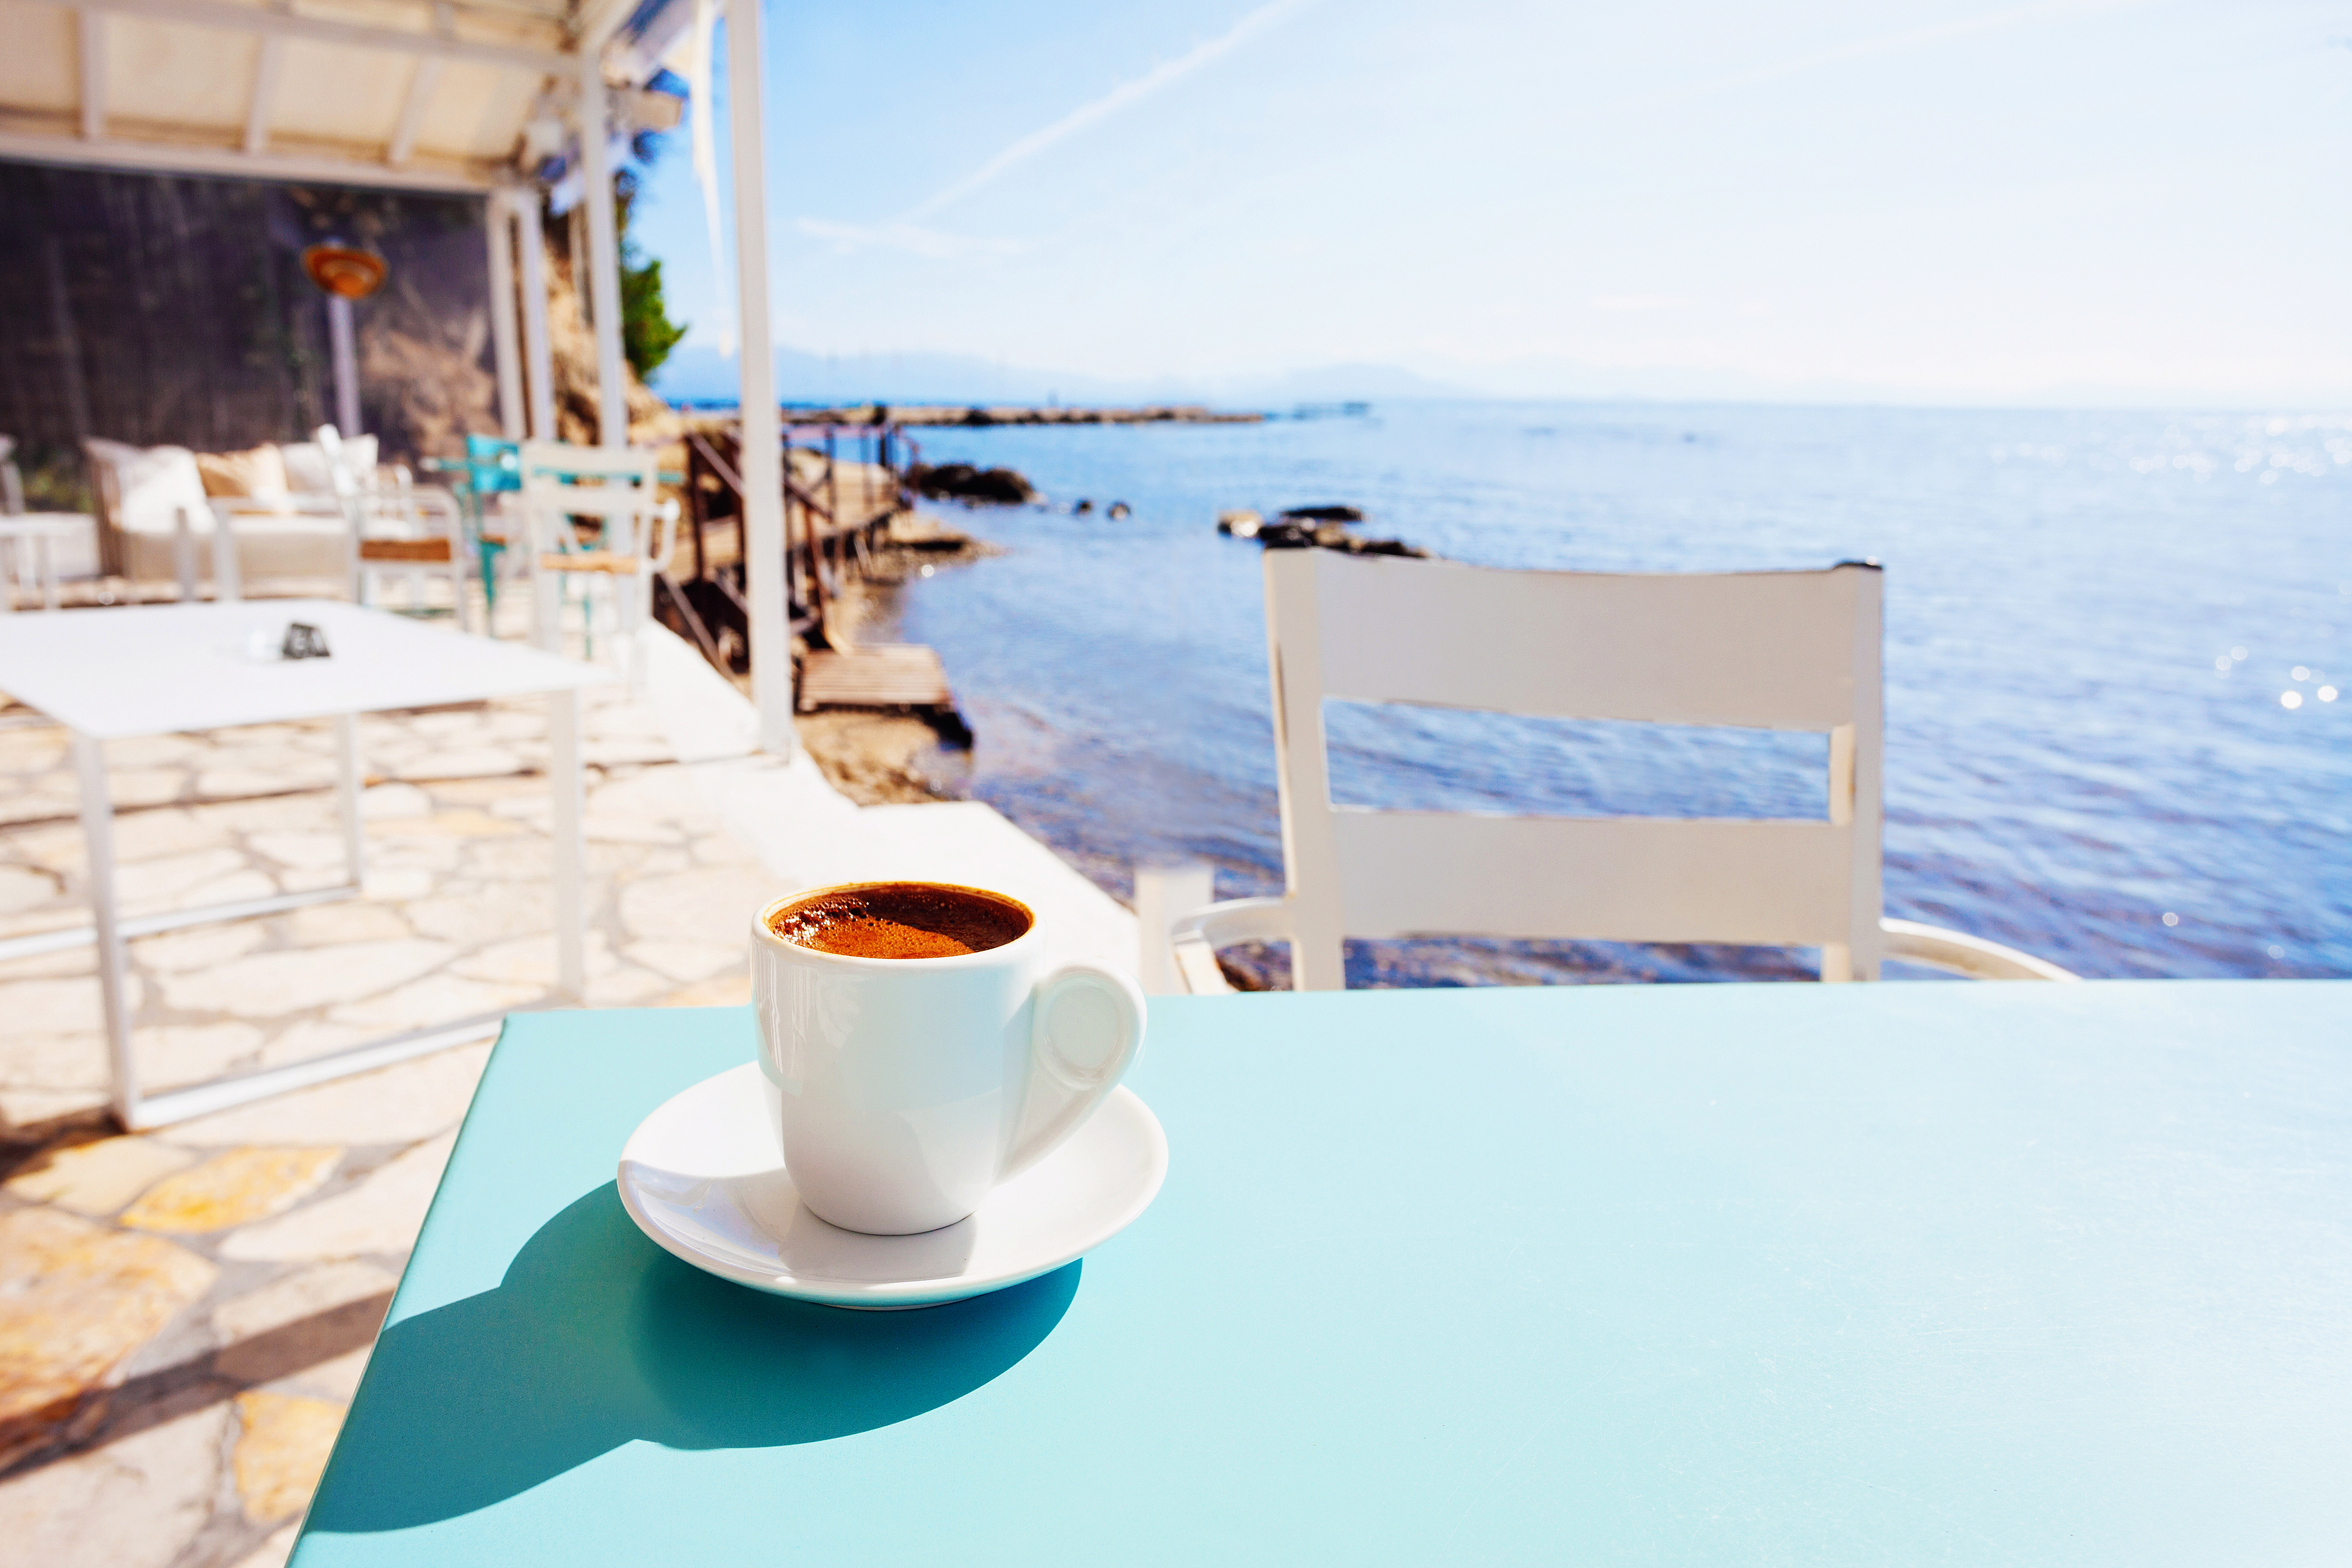 How to Order Coffee in the Greek Language